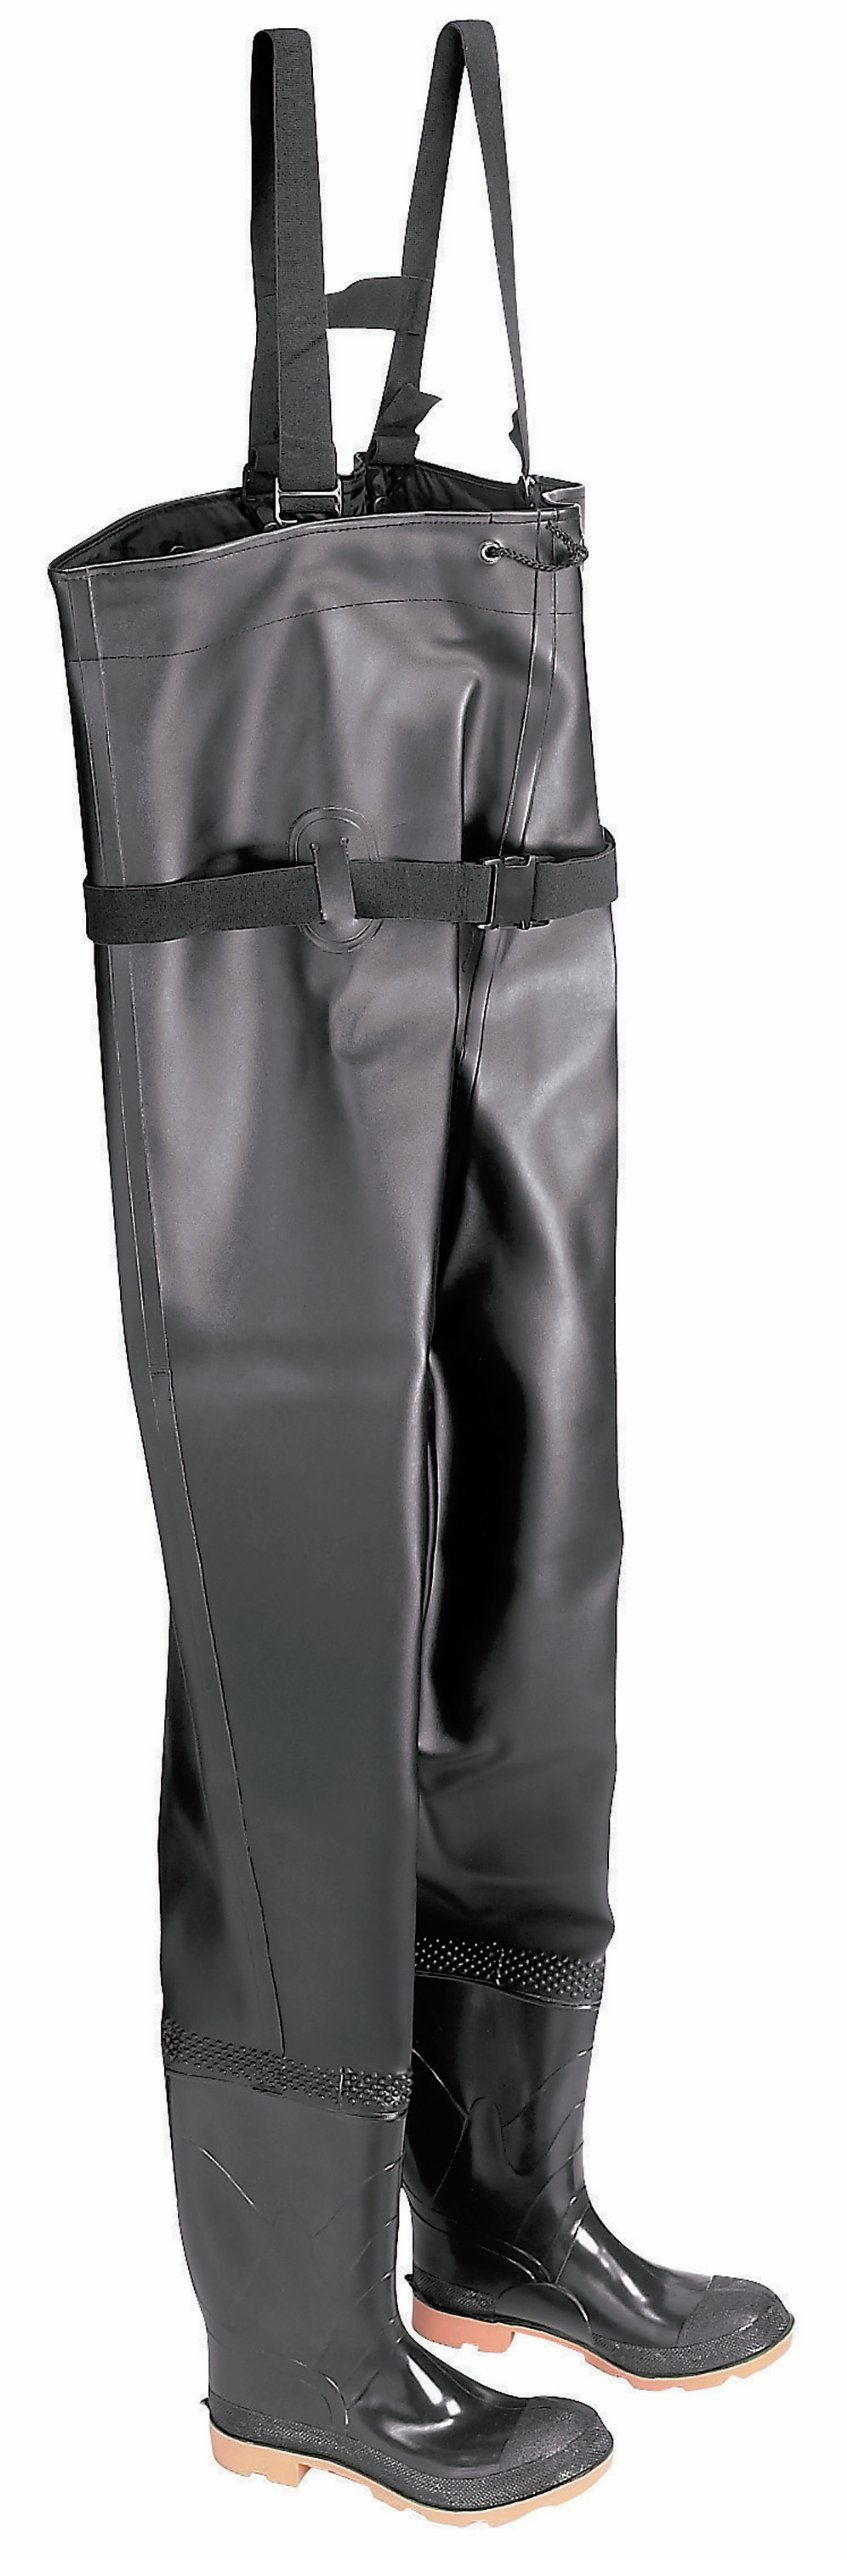 ONGUARD 86066 PVC/Polyester Men's Plain Toe Chest Wader Boots with Cleated Outsole, 56-19/32'' Height, Black, Size 10